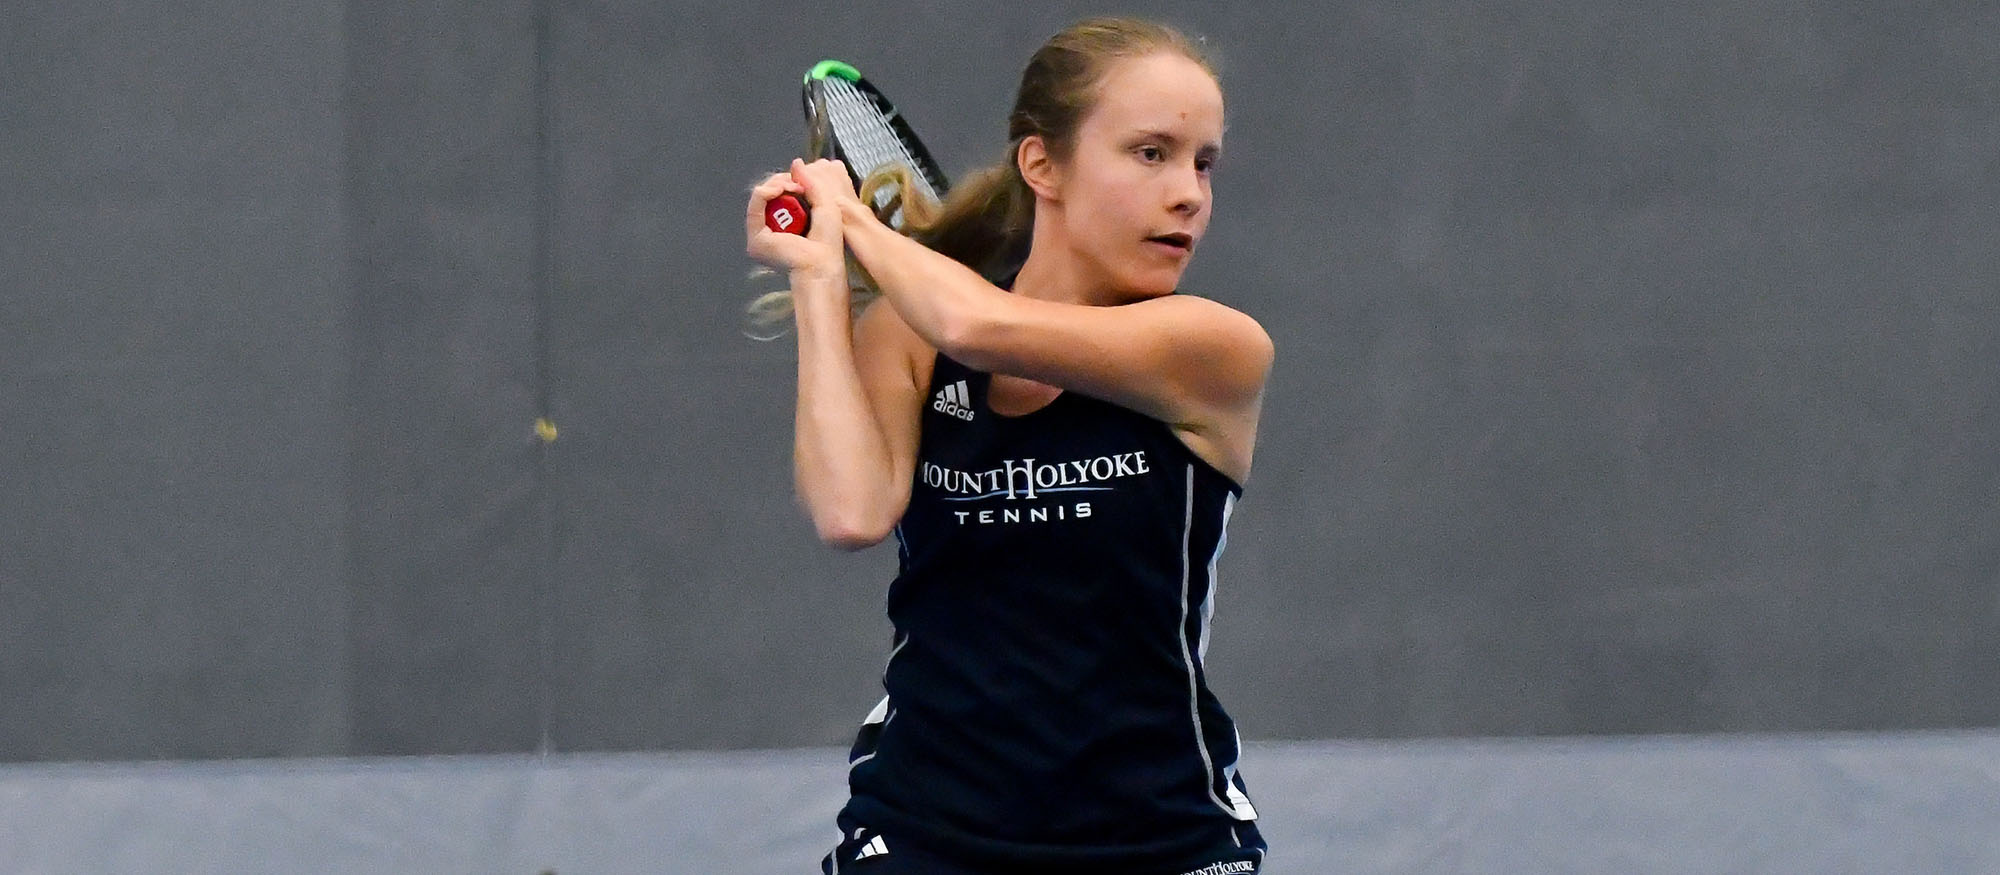 Action photo of Lyons tennis player, Anya Gerasimova.